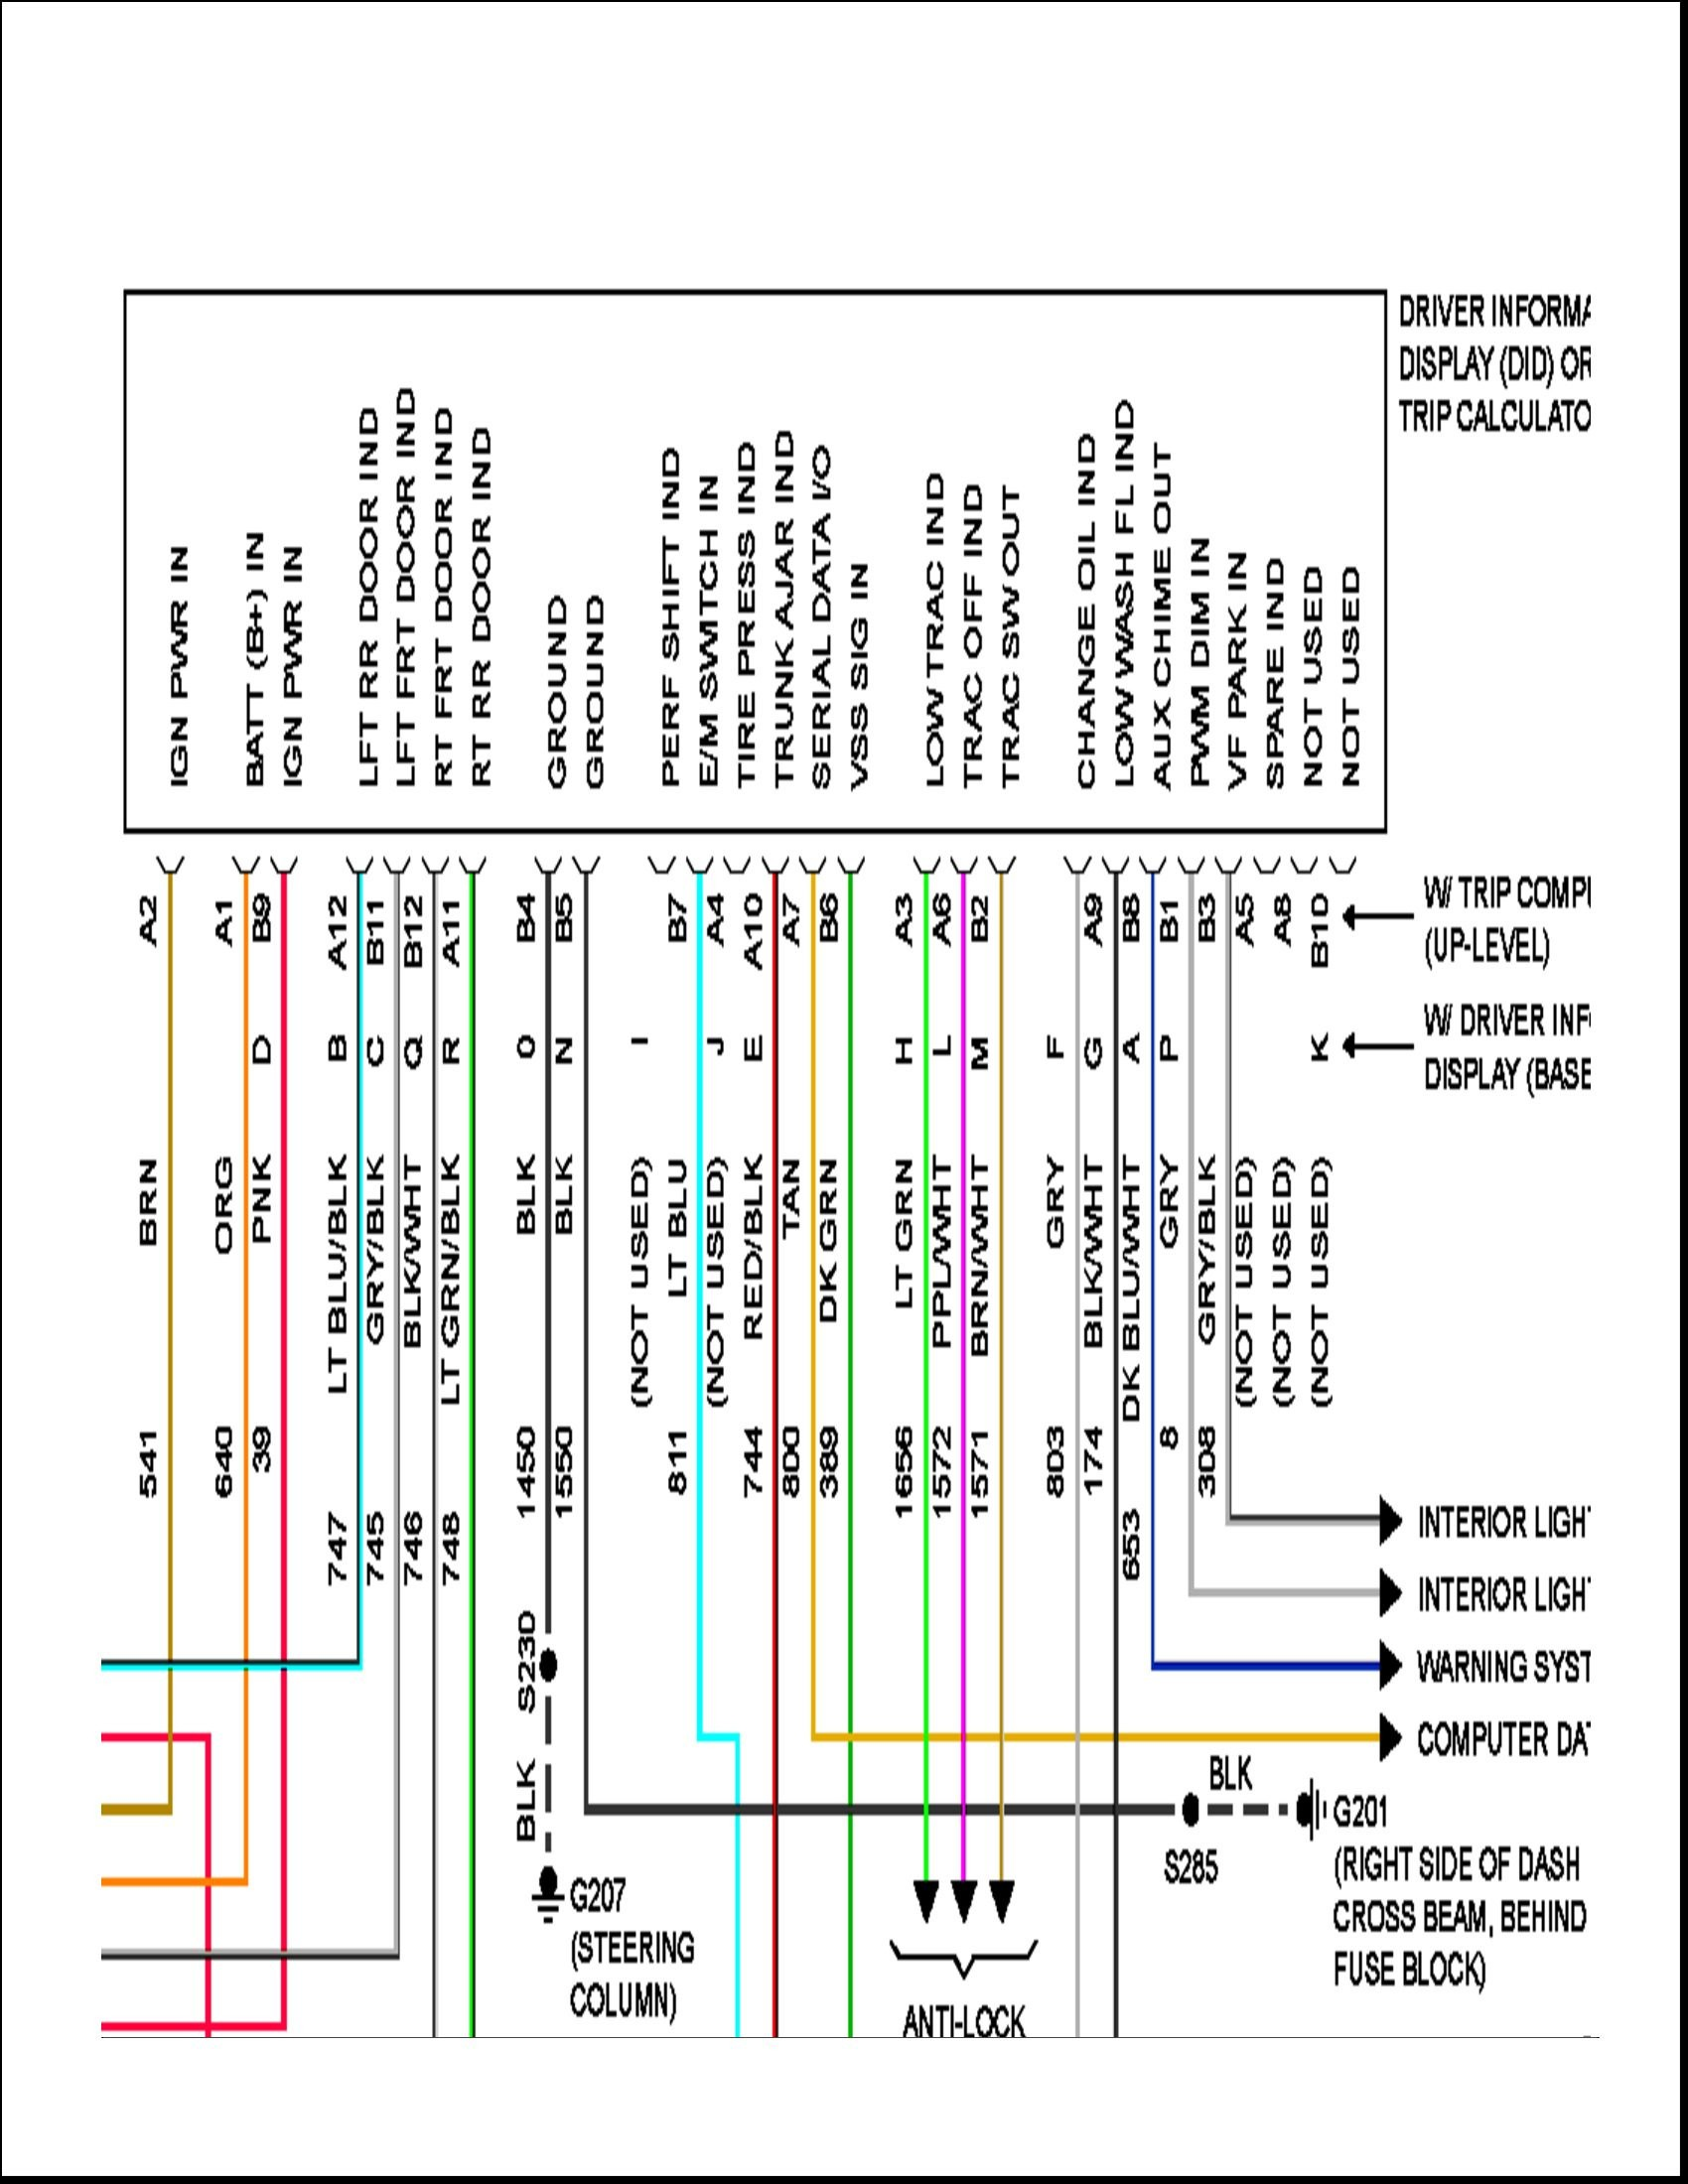 Wiring Diagram For 2003 Pontiac Grand Am Lincoln Ac 225 Dc Welder Wiring Diagram Wiring Diagram Schematics